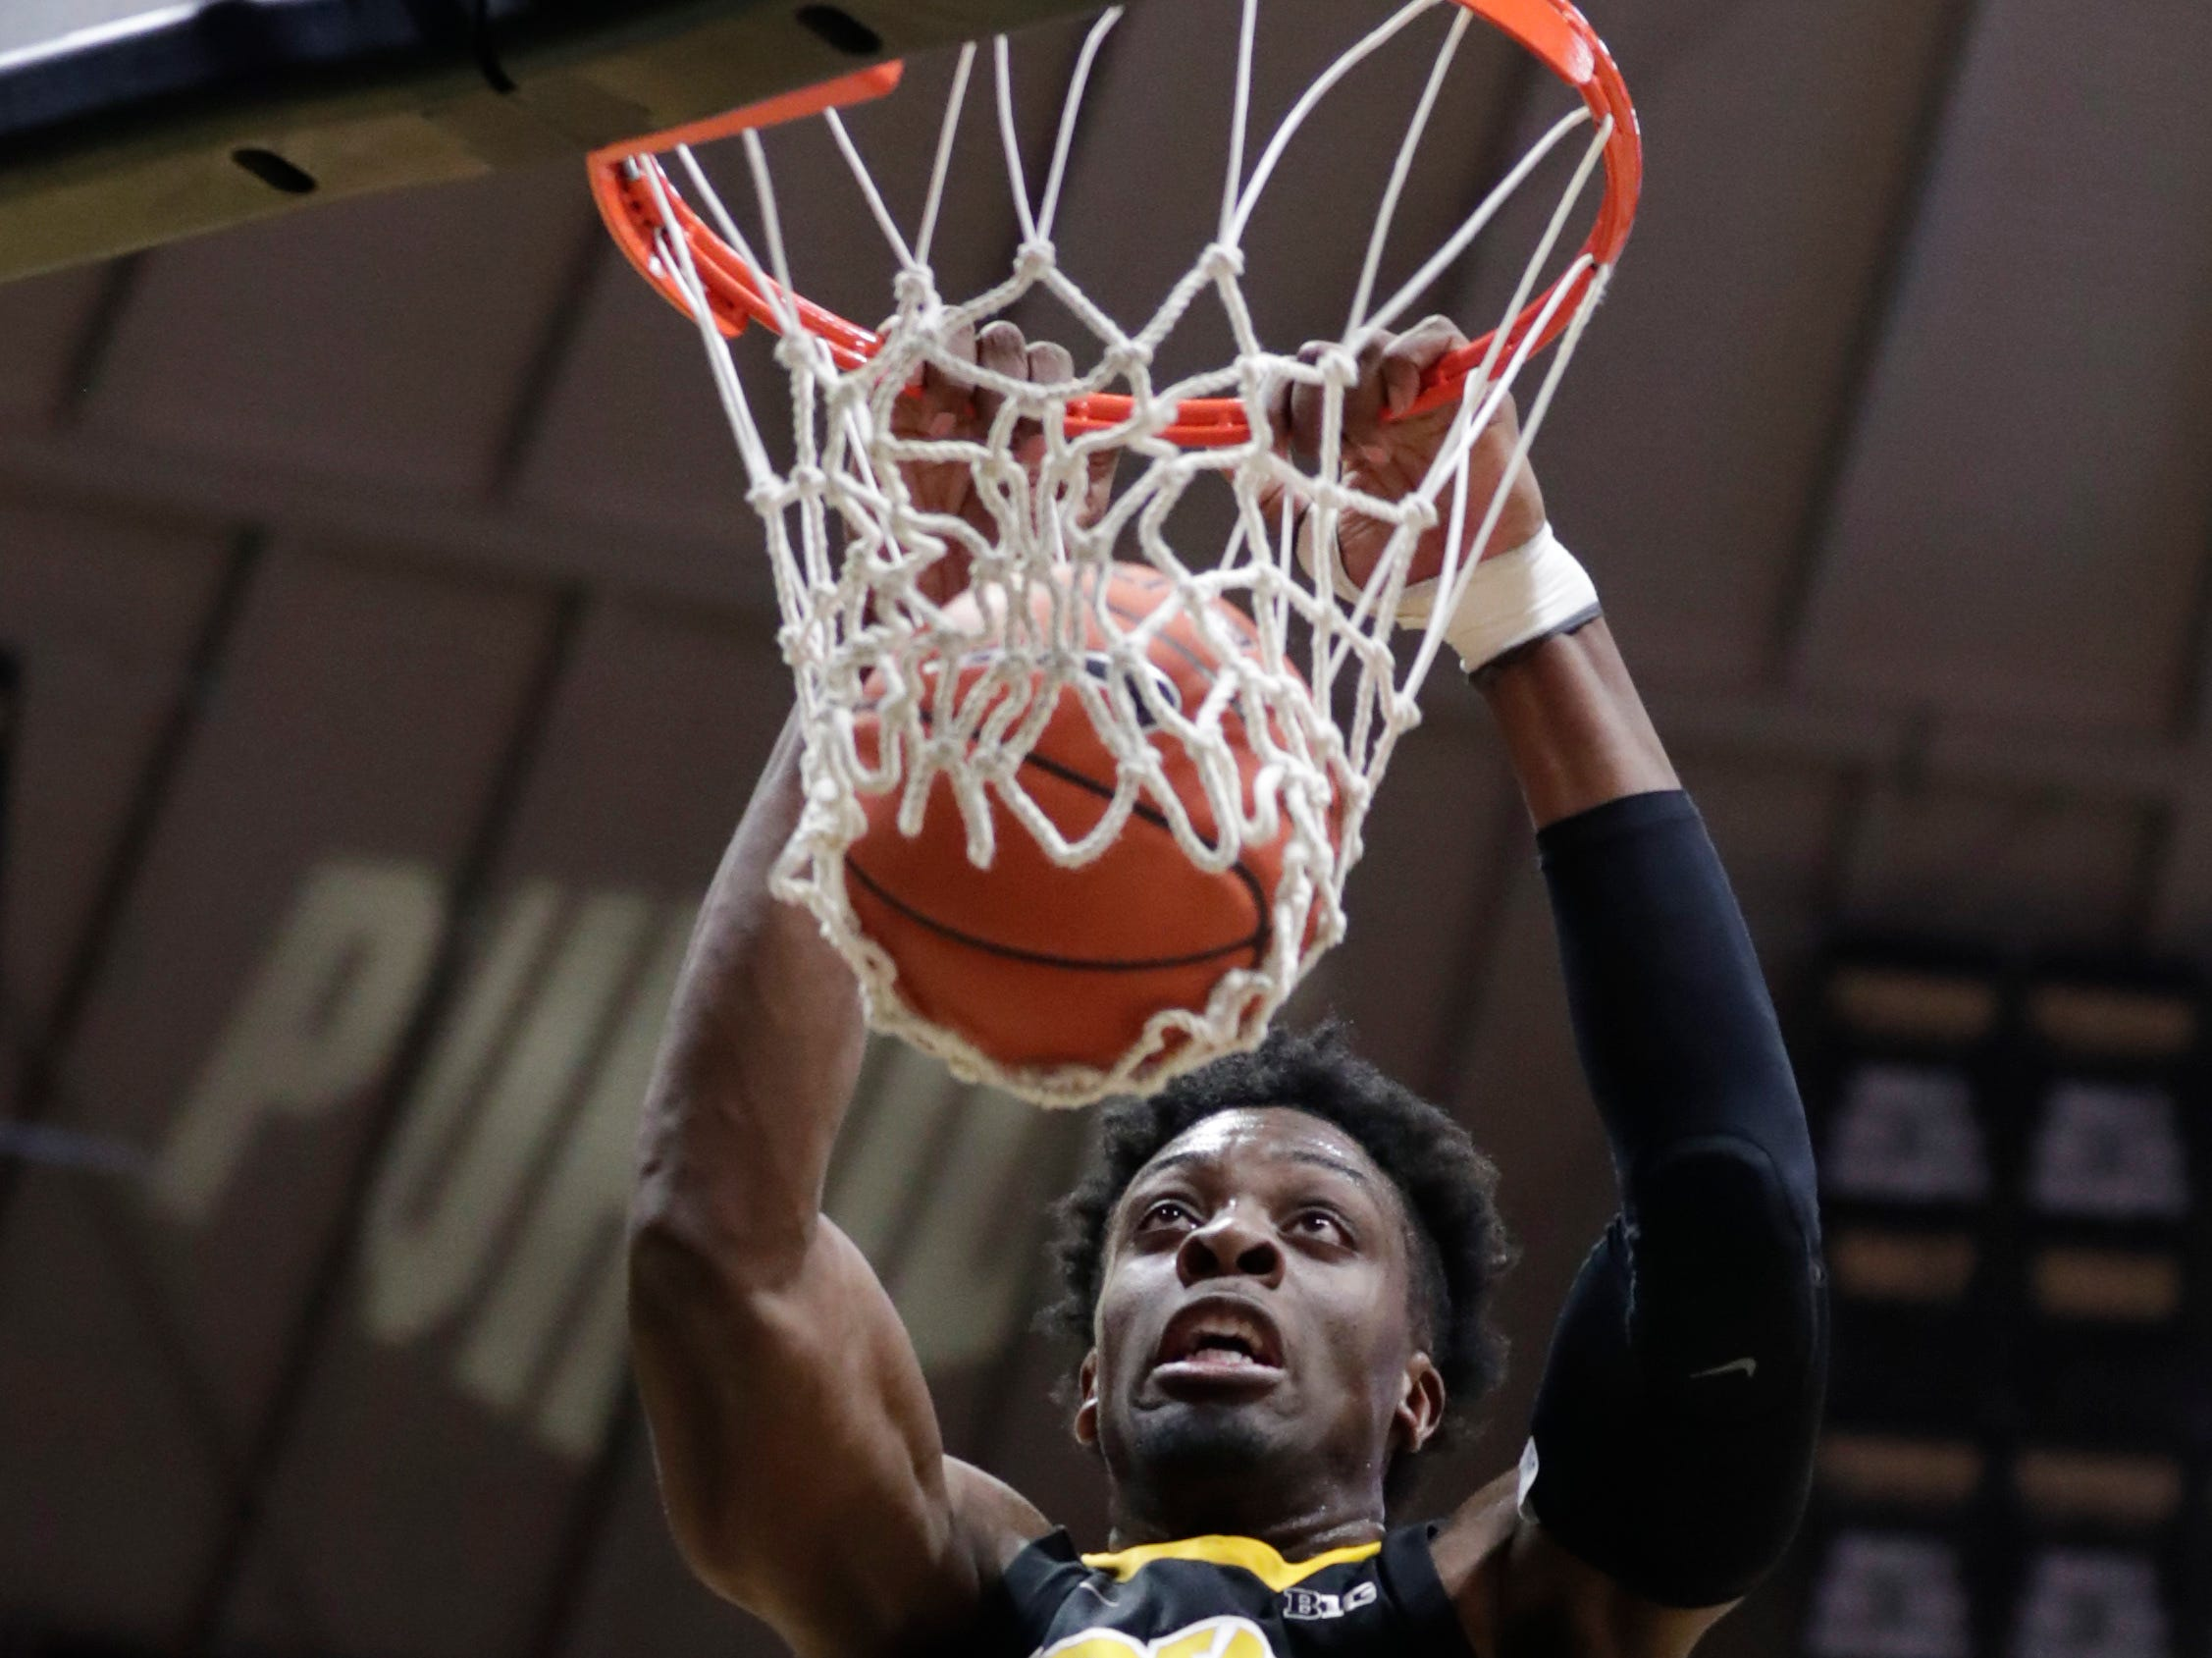 Iowa forward Tyler Cook (25) dunks against Purdue during the first half of an NCAA college basketball game in West Lafayette, Ind., Thursday, Jan. 3, 2019.